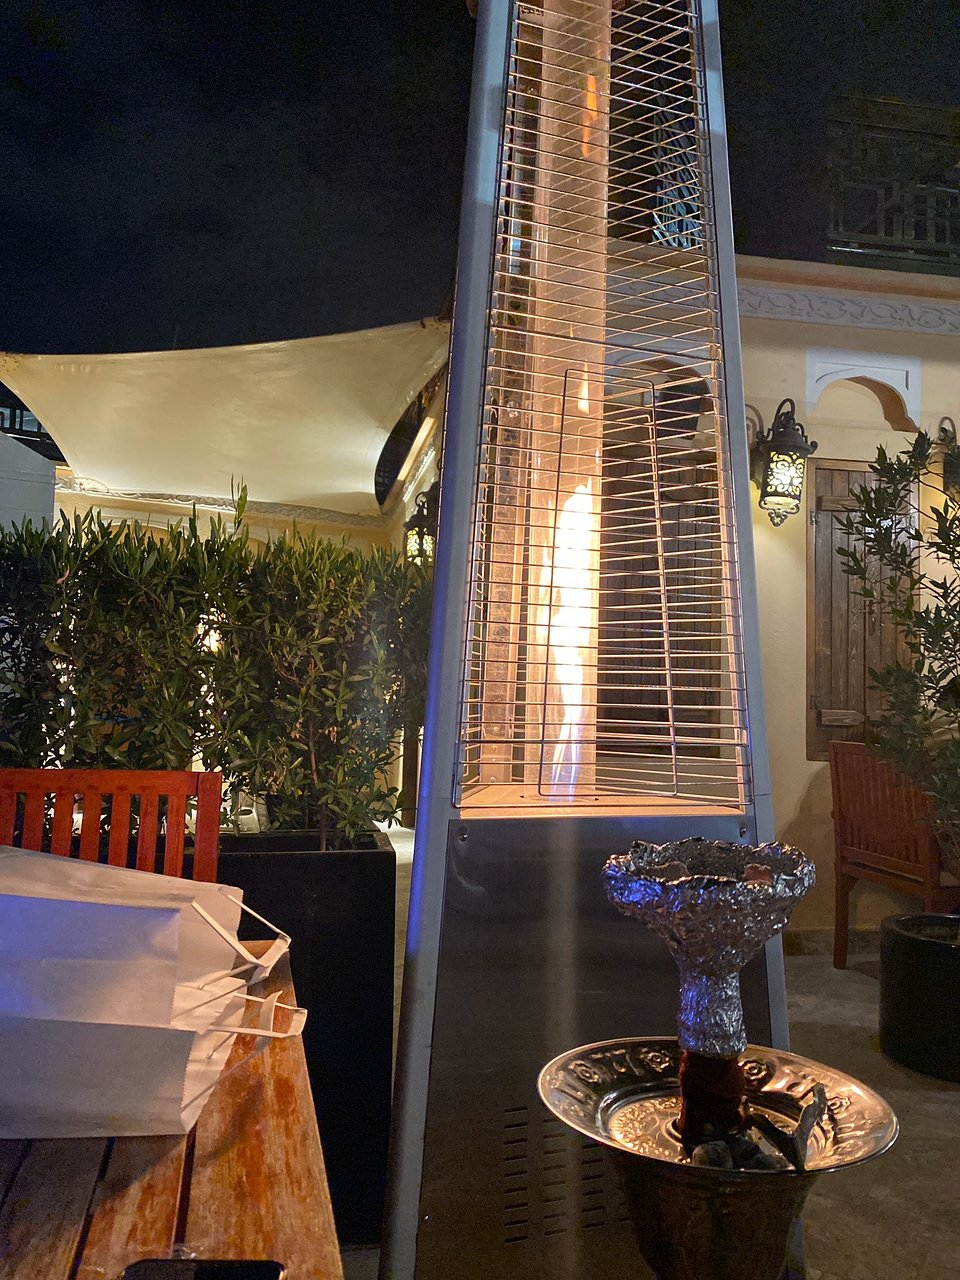 The Best Al Hofuf Spa Resorts Of 2020 With Prices